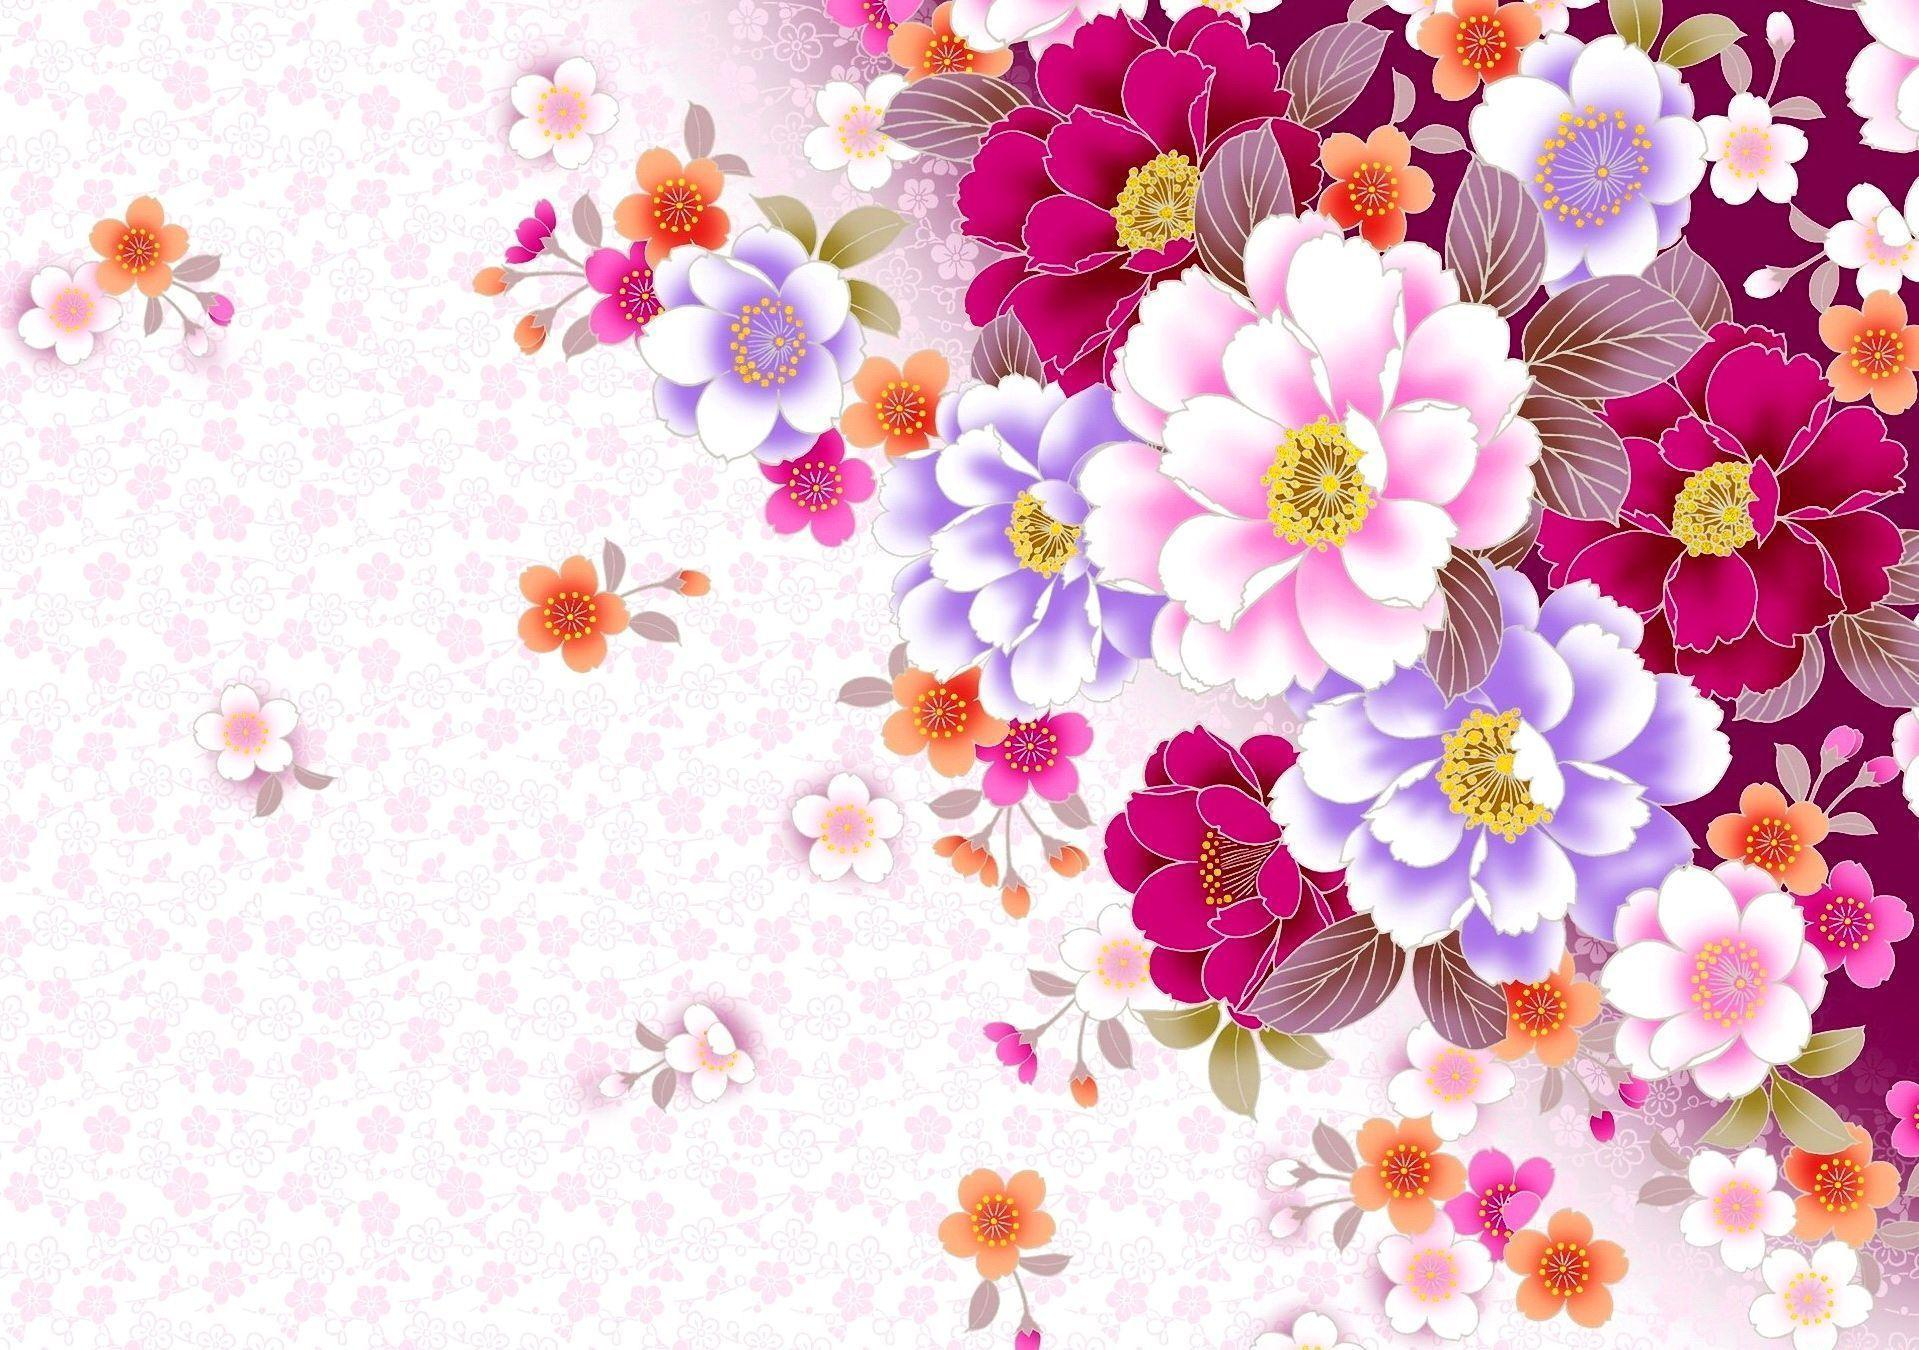 Floral Desktop Backgrounds 1919x1350